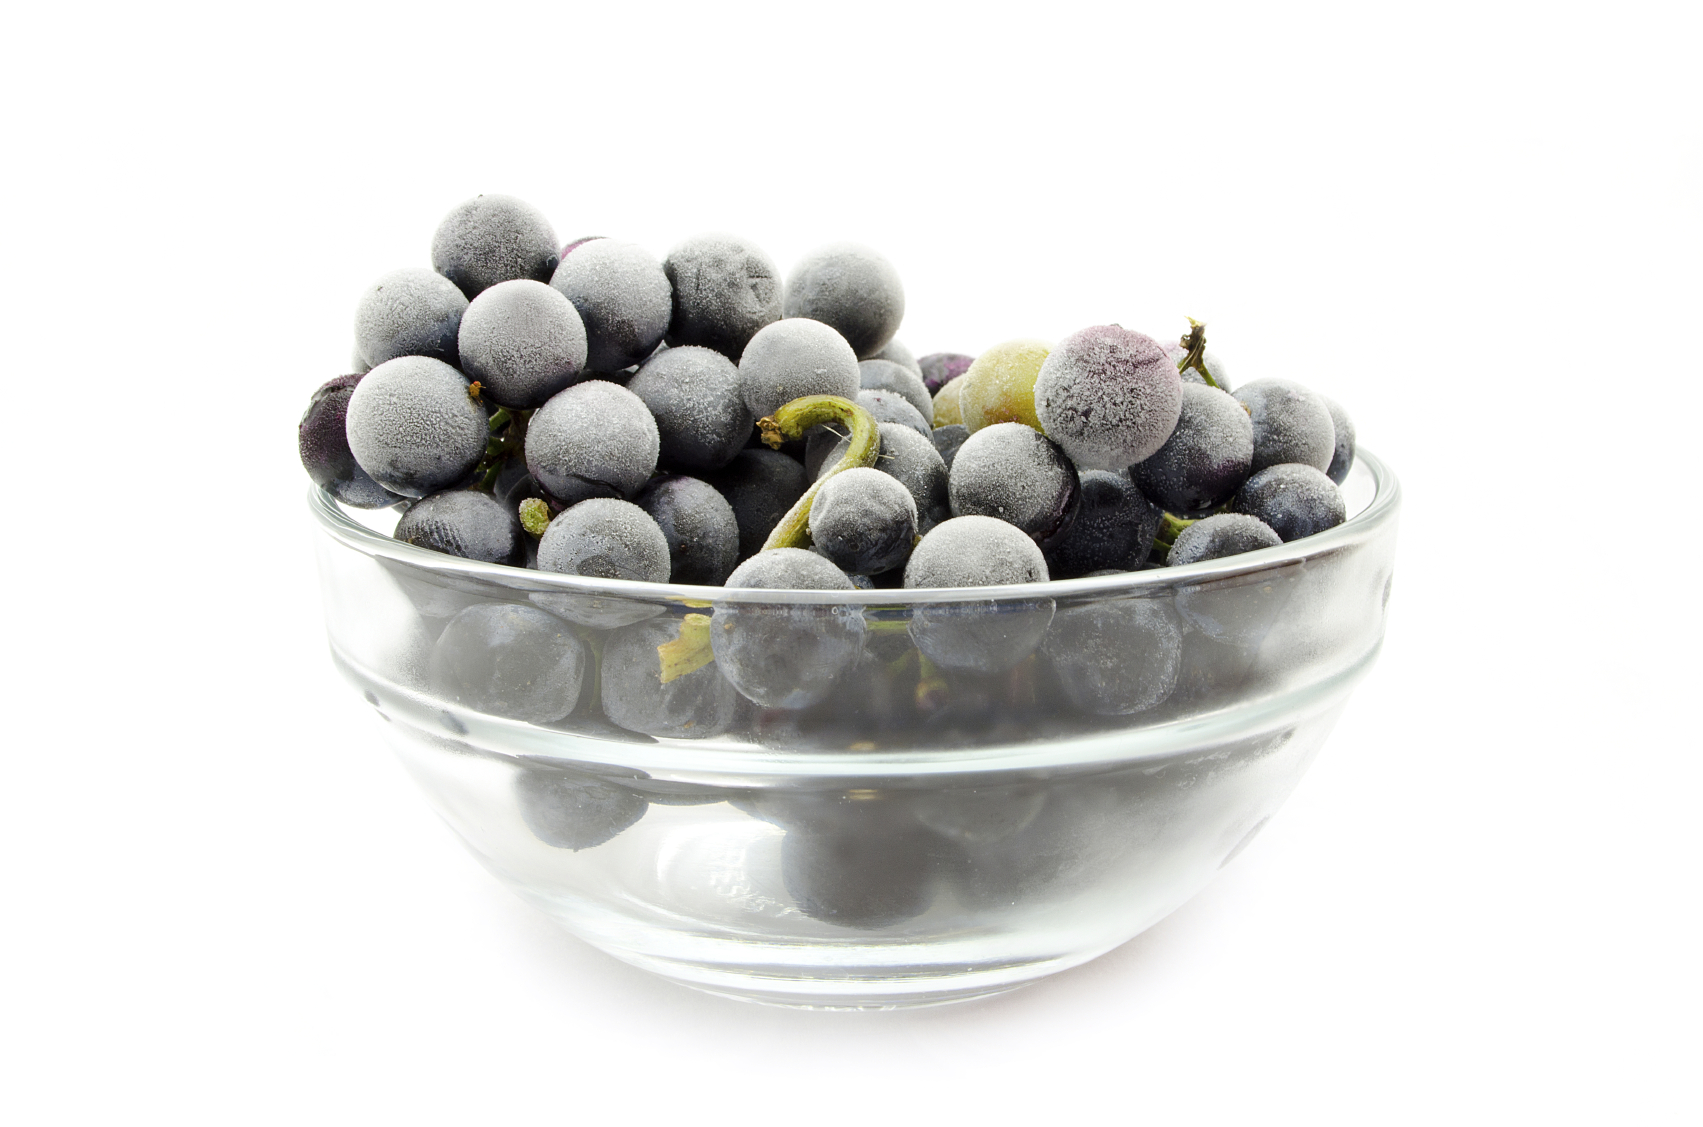 iStock: Grapes: One simple nutrition boost